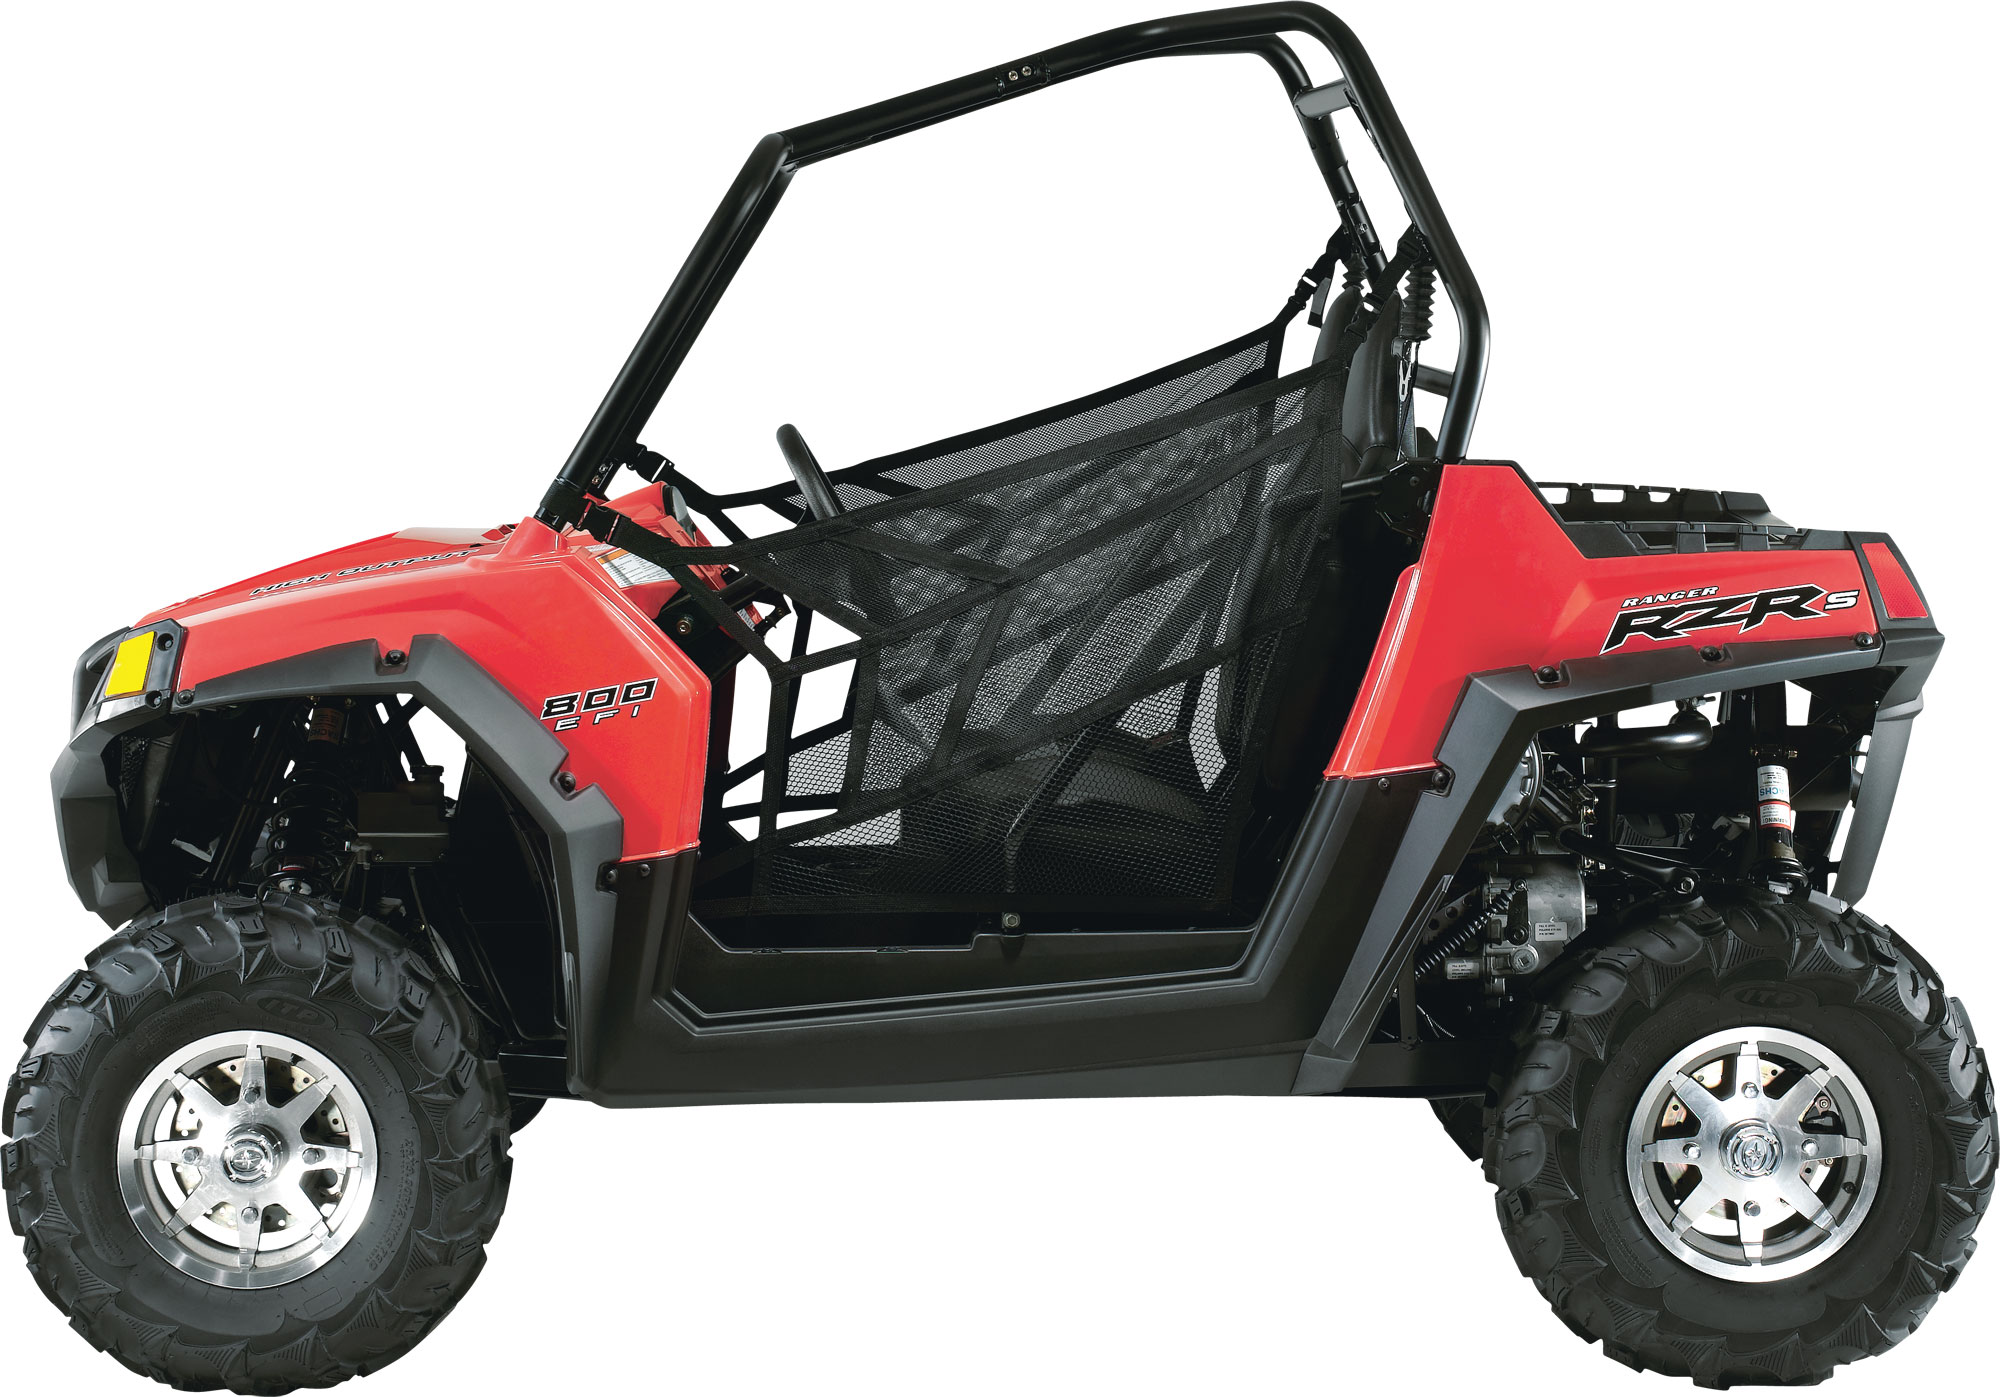 POLARIS RZR S 800 specs - 2011, 2012 - autoevolution